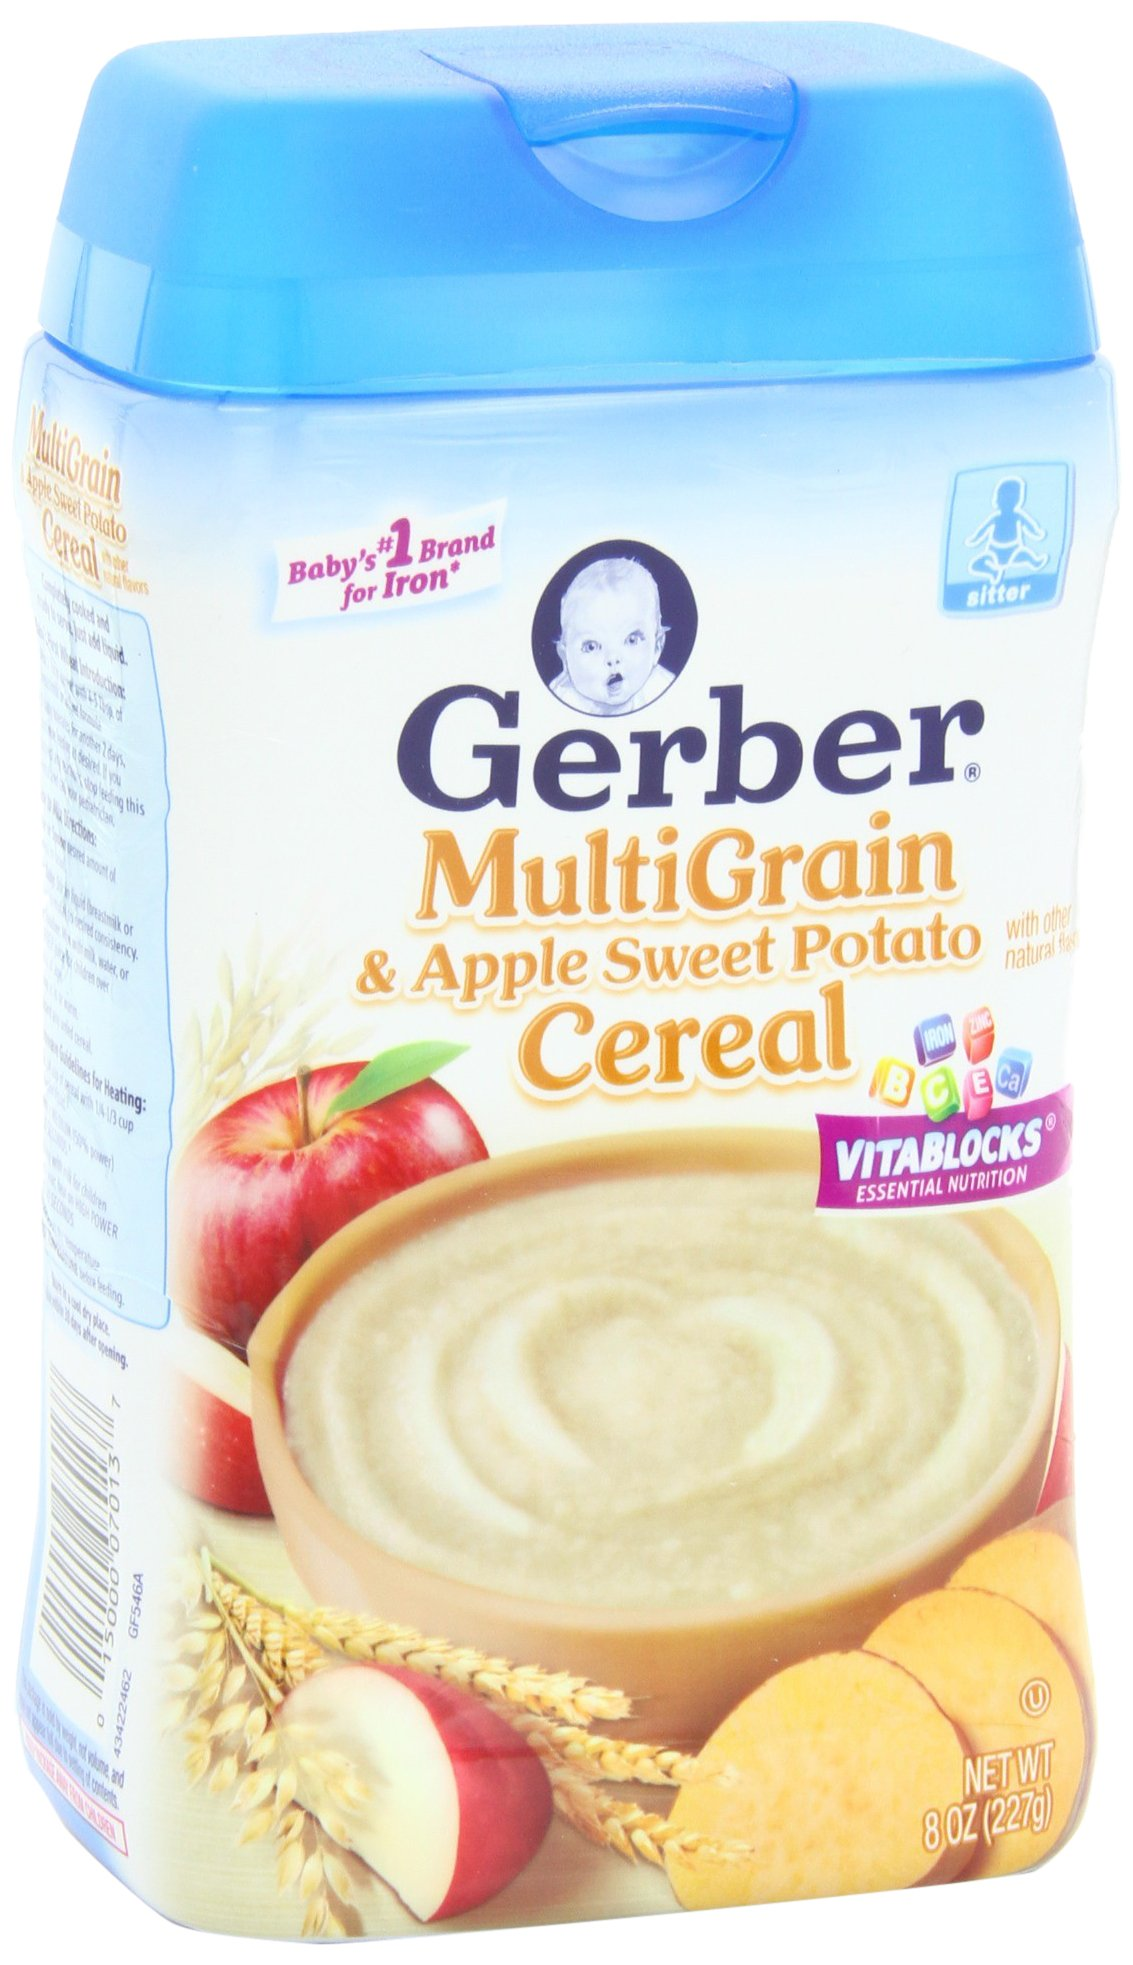 Gerber Multigrain and Apple Sweet Potato Baby Cereal, 8 Ounce (Pack of 6) by Gerber (Image #1)